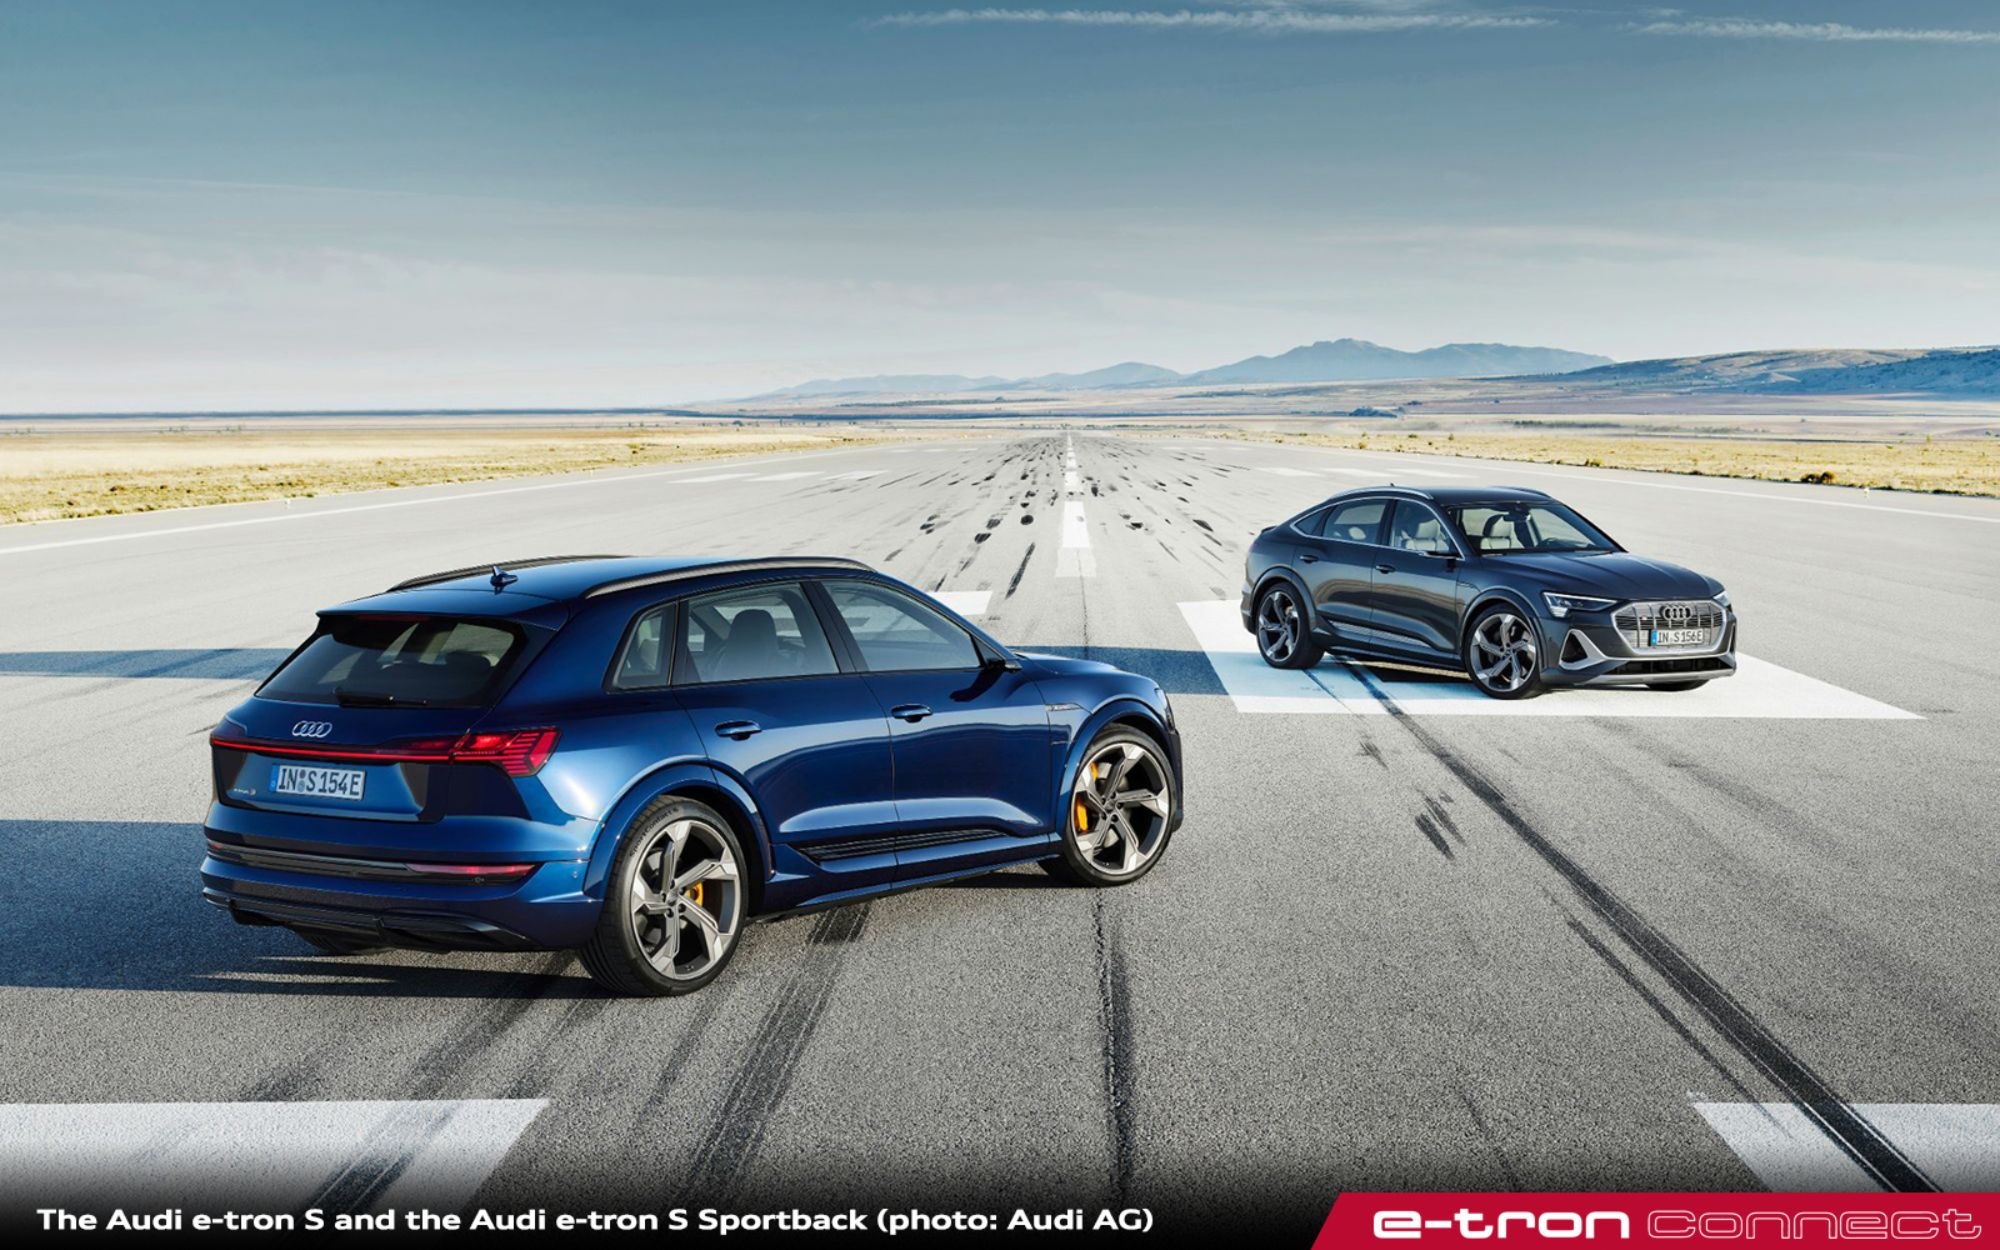 Innovative, Dynamic, and Electric: The Audi e-tron S and the Audi e-tron S Sportback